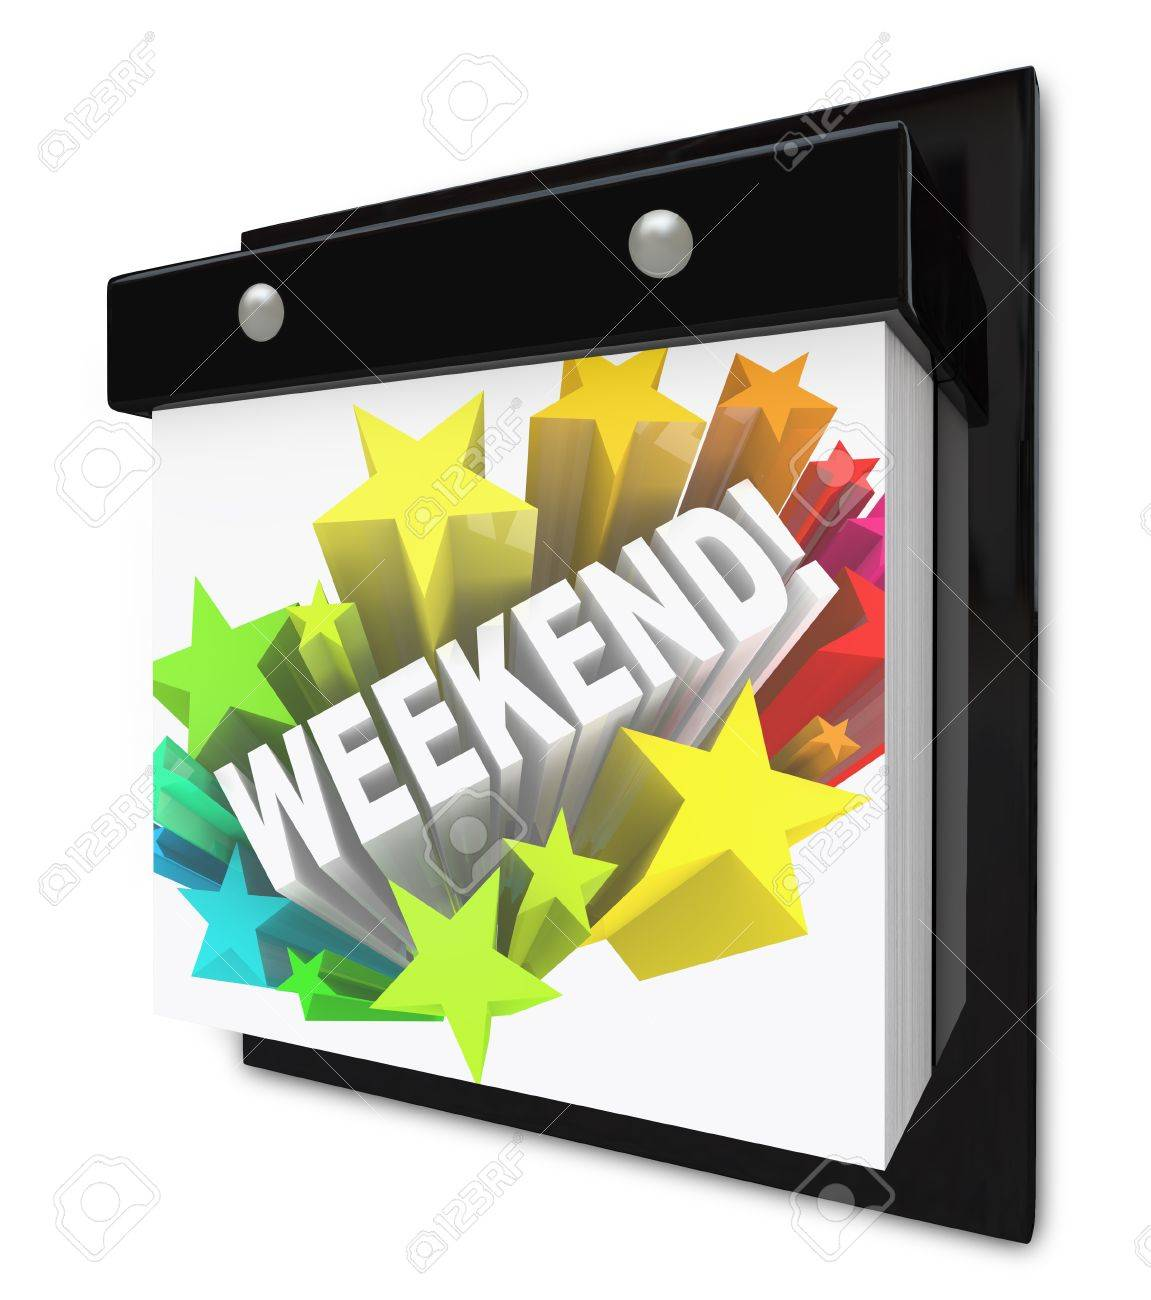 A Wall Calendar With The Word Weekend In A Colorful Starburst ...